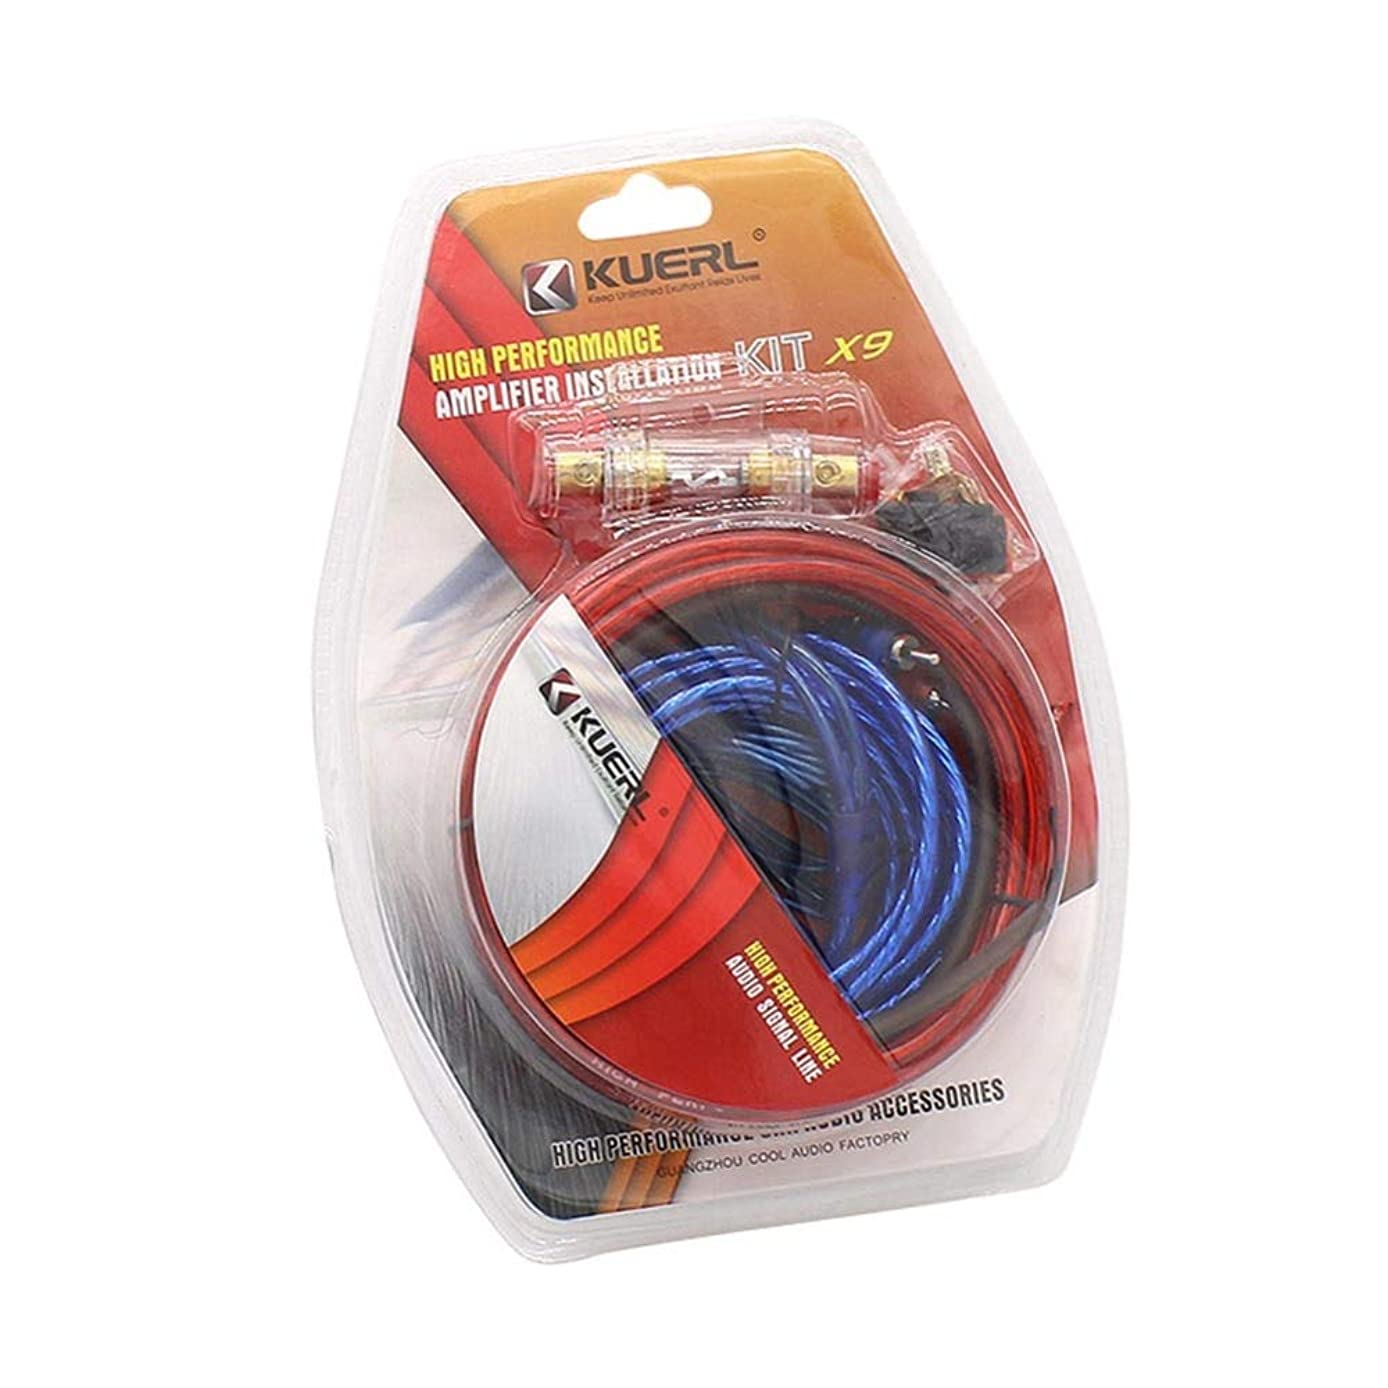 Davitu Car Power Amplifier Installation Kit 8 Gauge Automobiles Speaker Woofer Subwoofer Cables Audio Wire Wiring Line with Fuse Suits